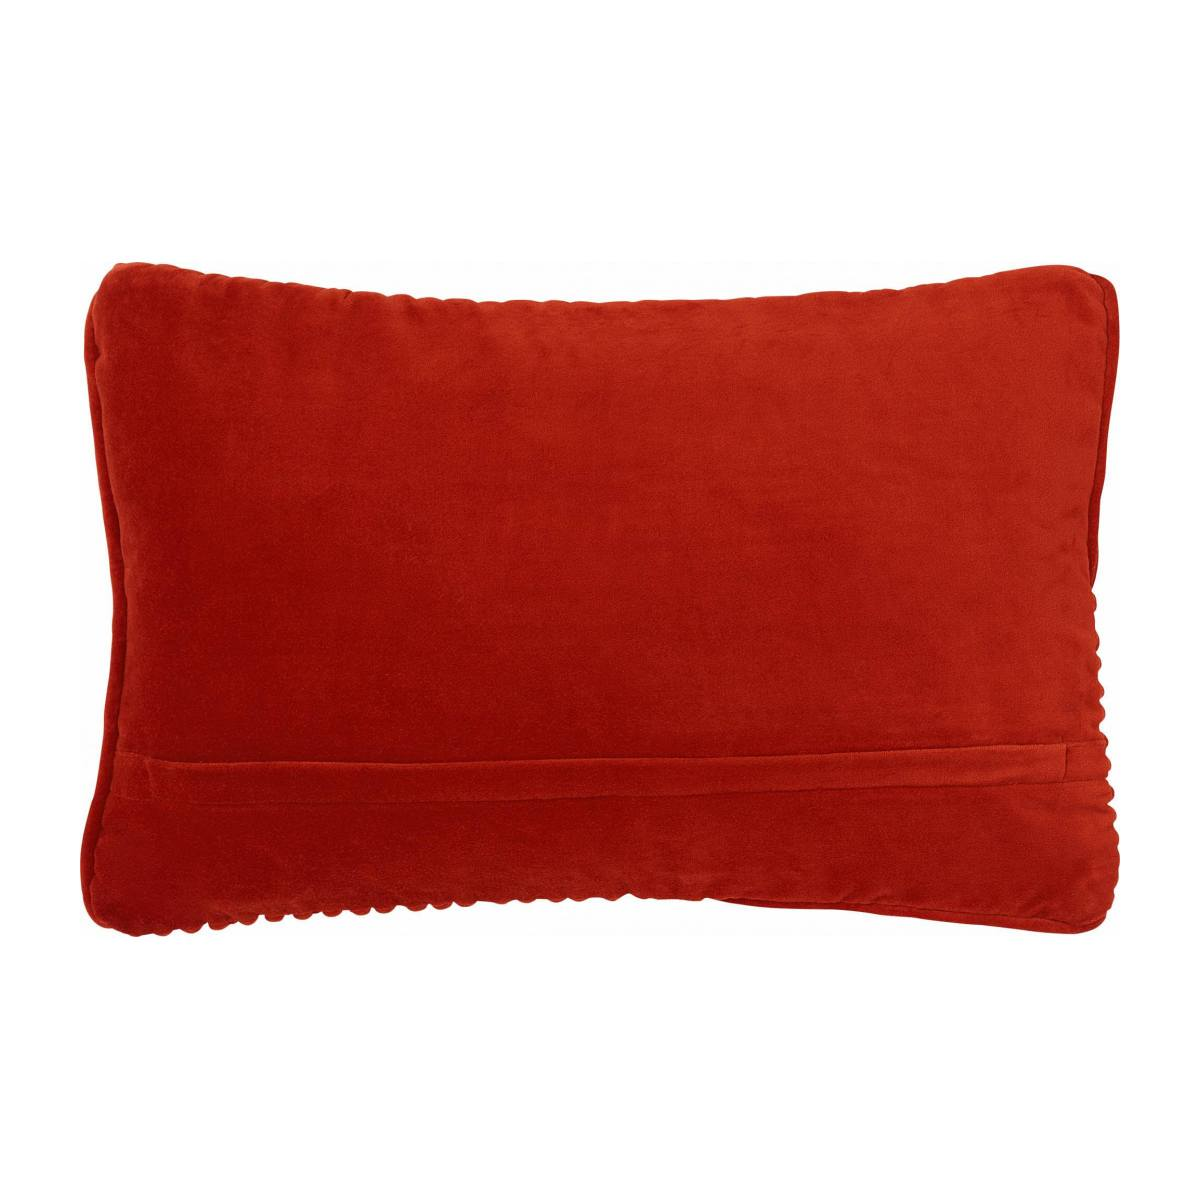 OPPER/CORD VELVET CUSHION 35X50 RUST